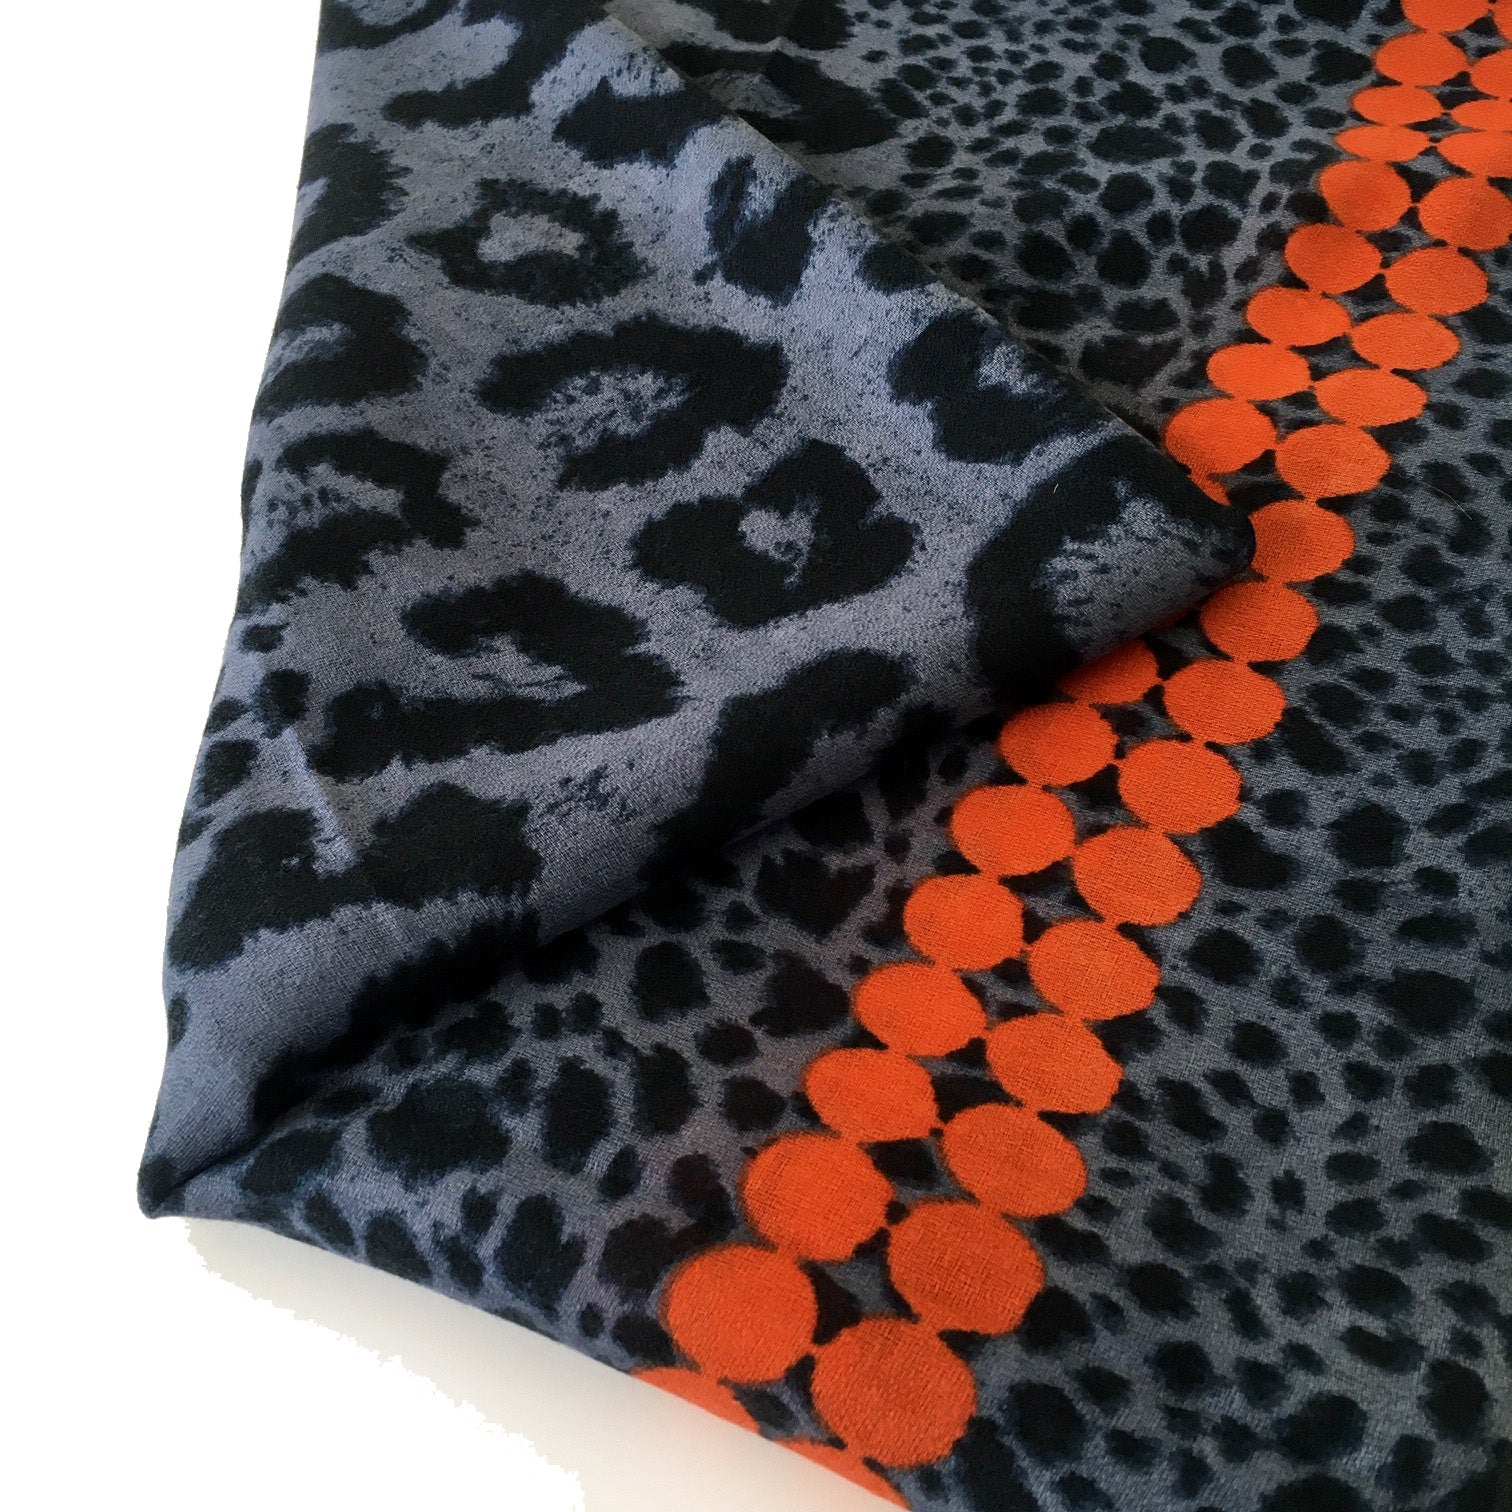 A-SHU LARGE ORANGE DOT PRINT BLUE LEOPARD PRINT SHAWL SCARF - A-SHU.CO.UK